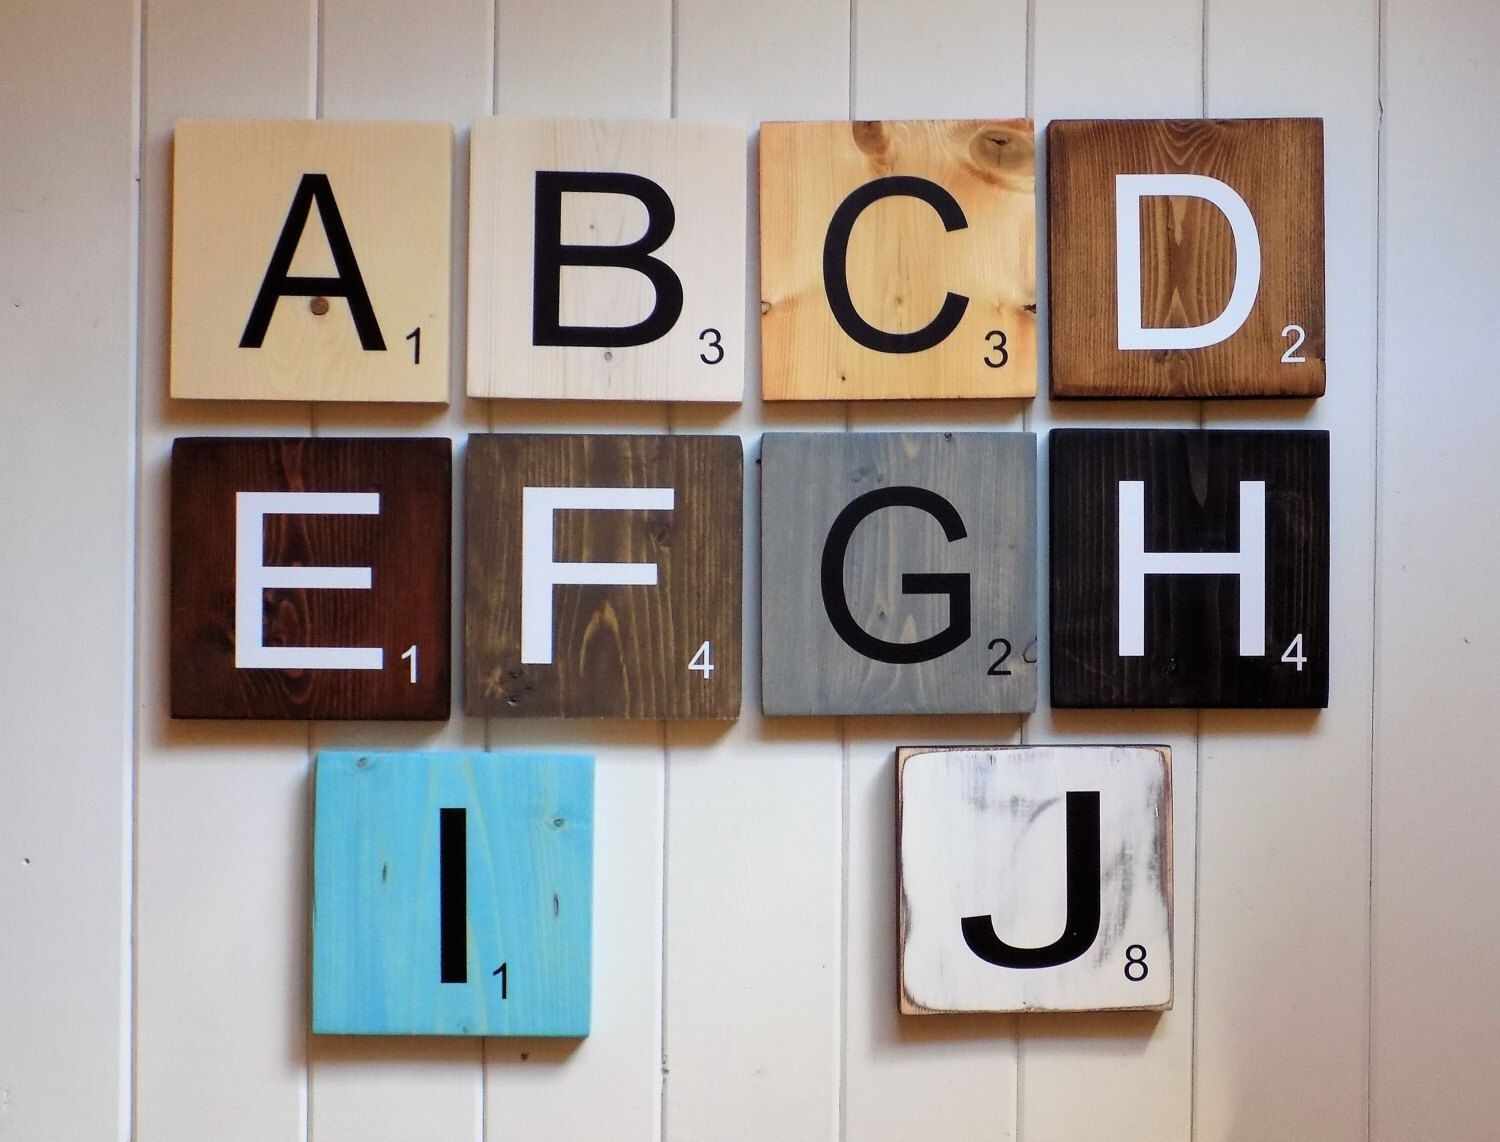 Large Scrabble Tiles, Scrabble Tiles, Scrabble Wall Art, Gallery Pertaining To Current Scrabble Wall Art (View 14 of 20)